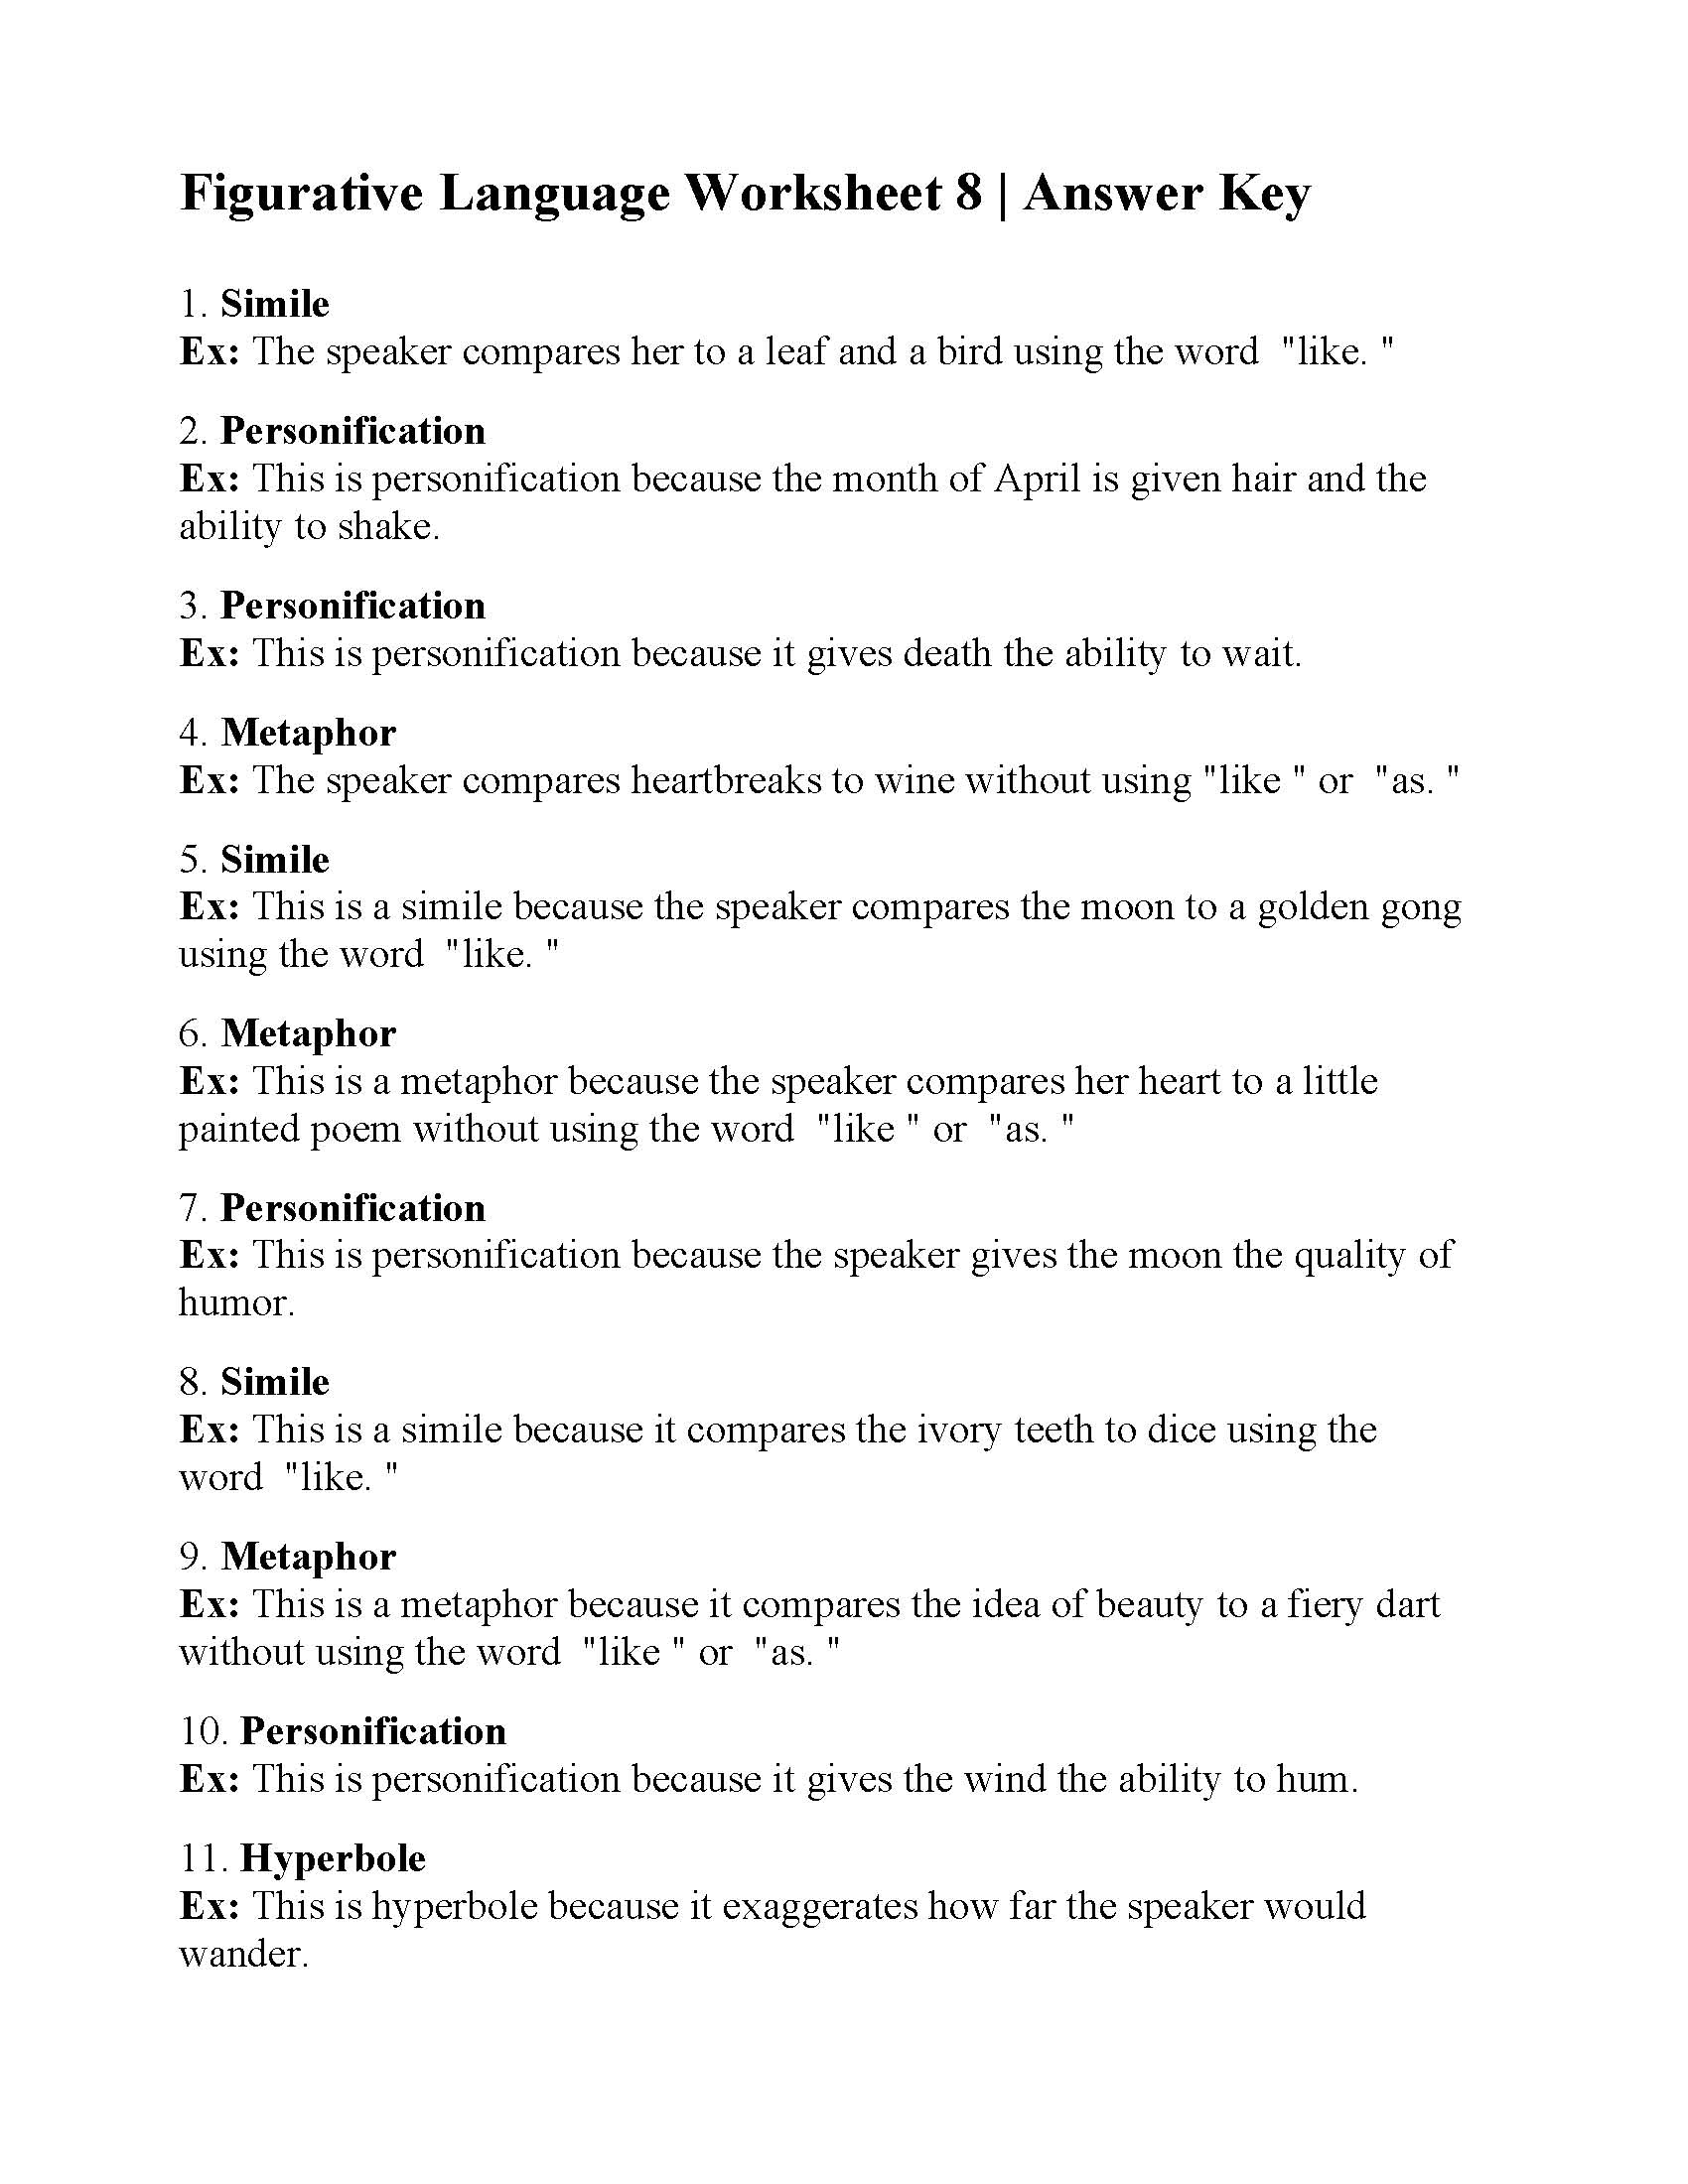 Figurative Language Review Worksheet Answers